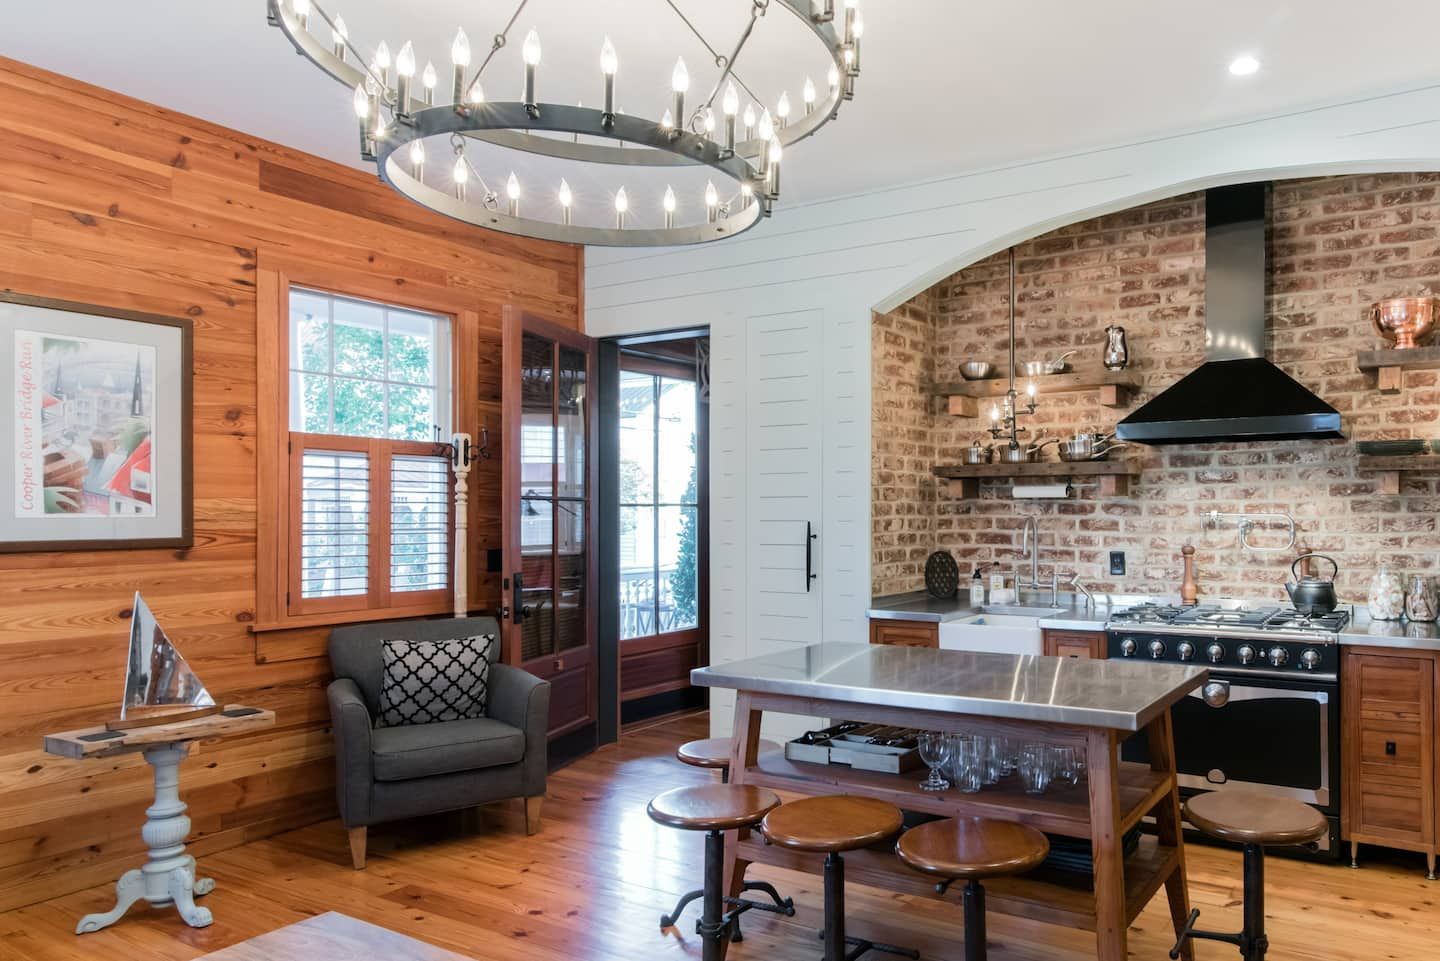 Coolest Airbnbs in South Carolina